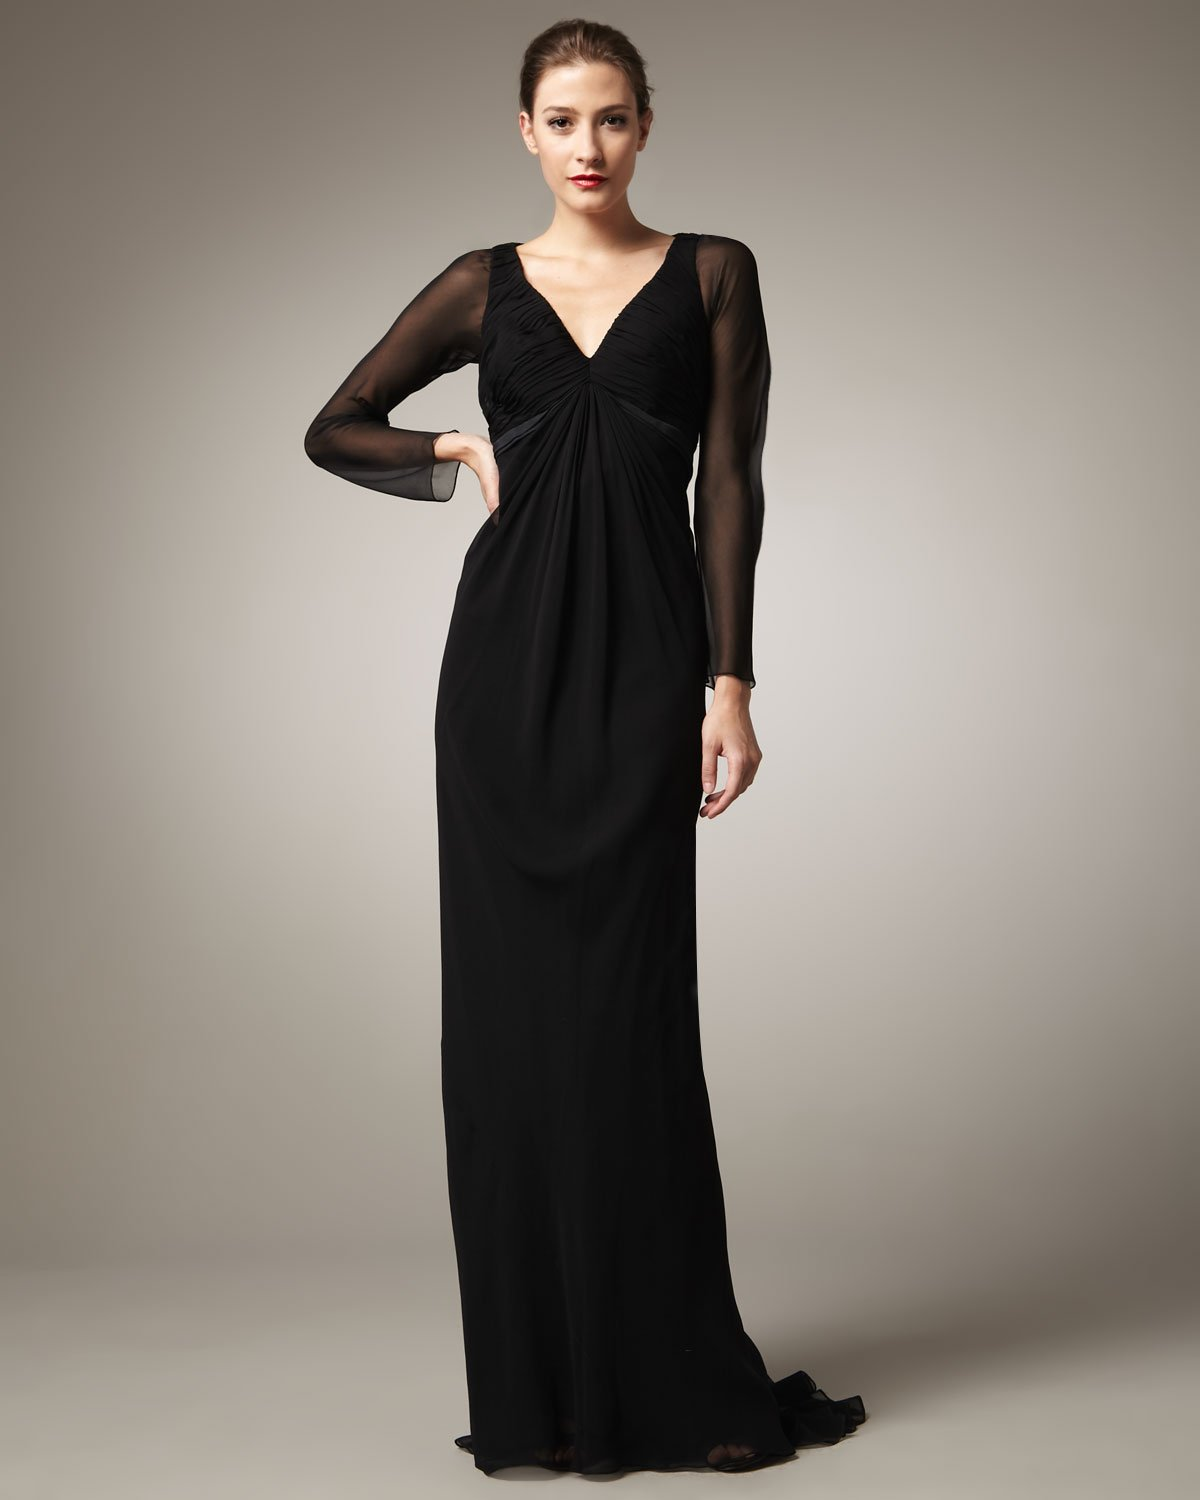 Lyst - Pamella Roland Long-sleeve Chiffon Gown in Black